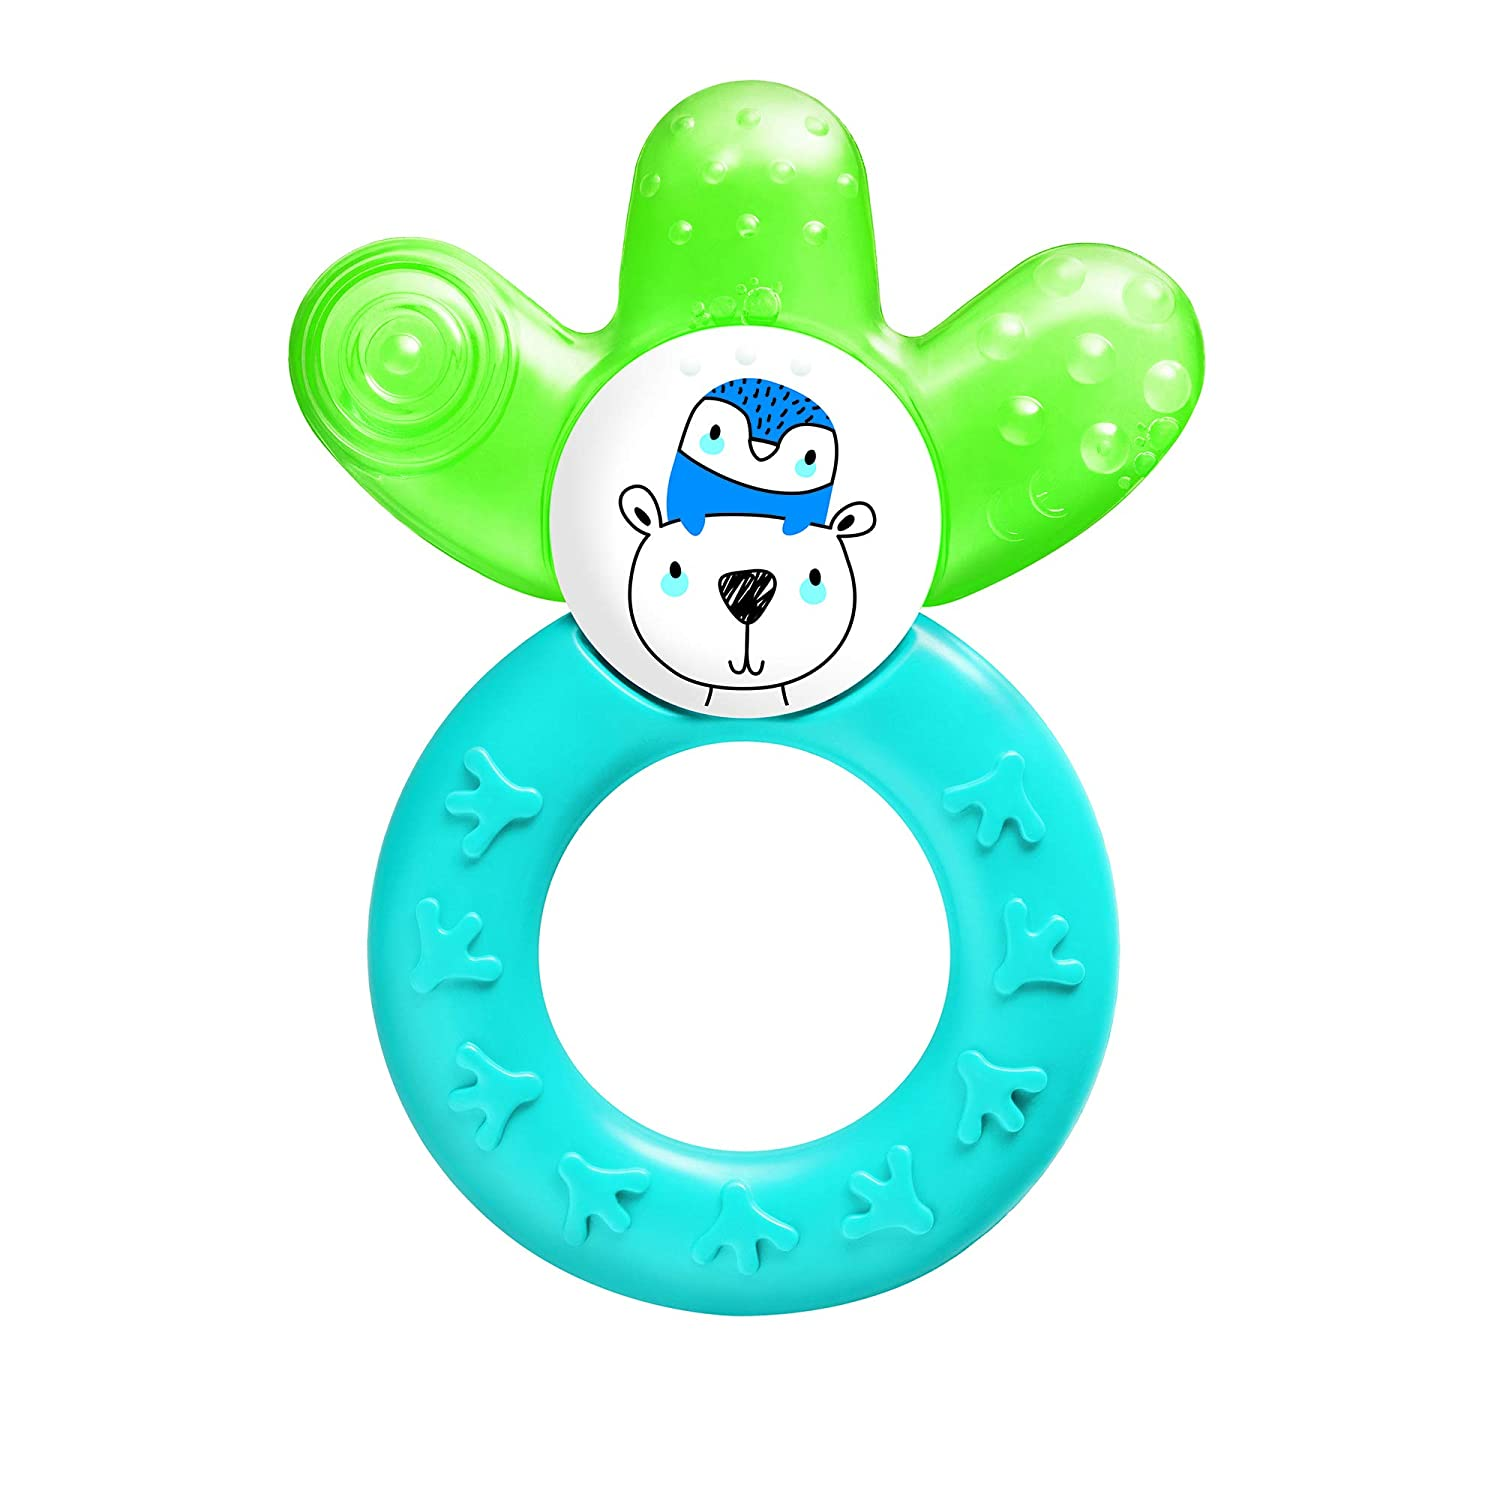 MAM Baby Toys, Teething Toys, Cooler Teether, Boy, 4+ Months, 1-Count